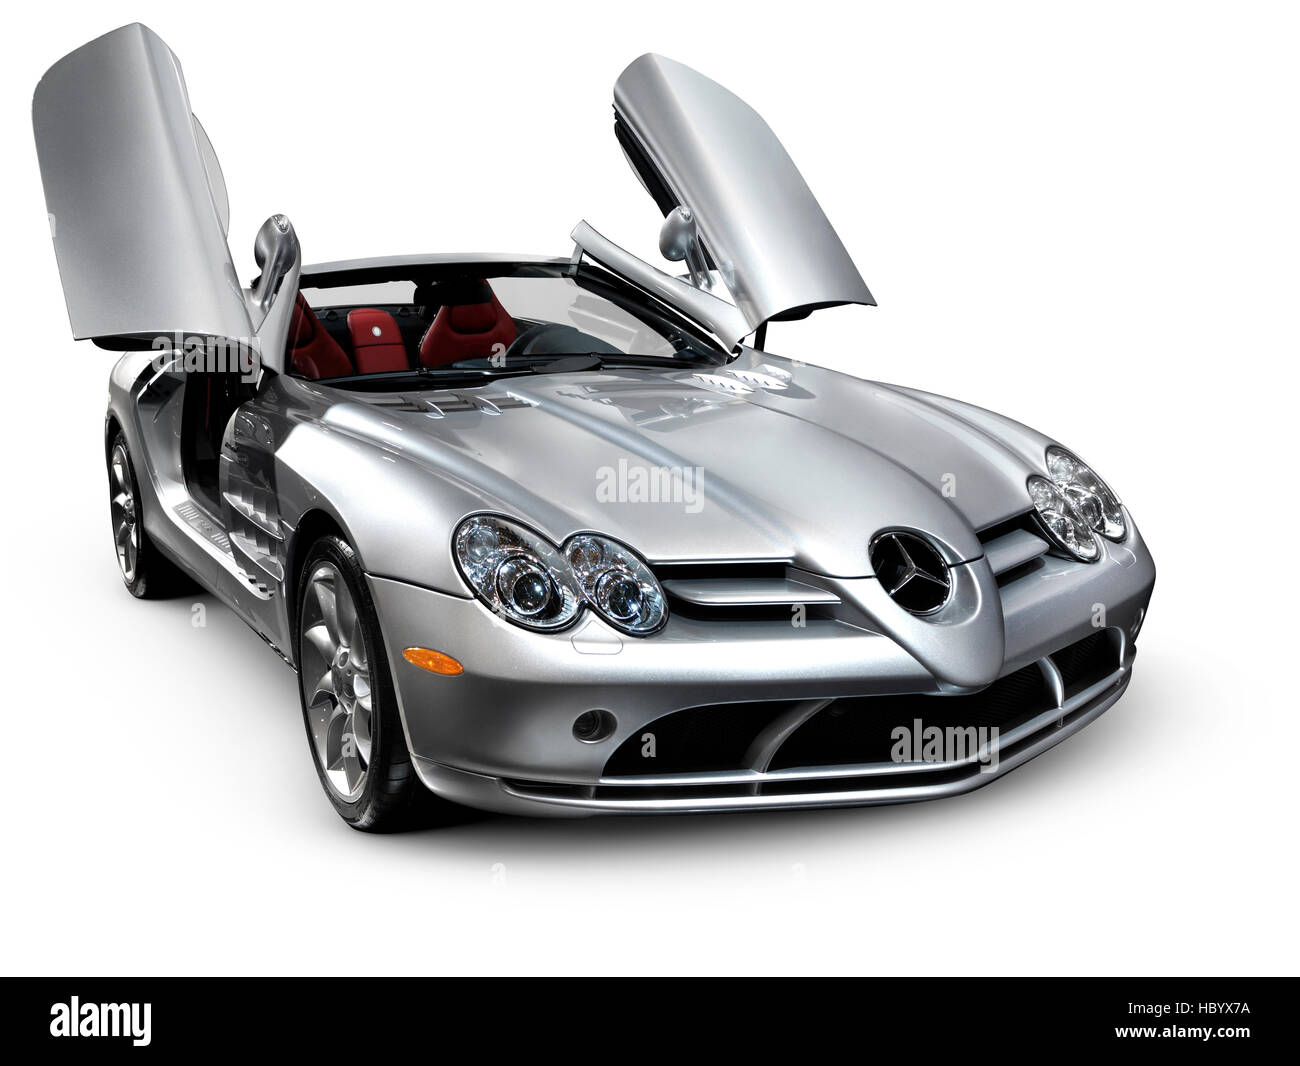 Anglo German Stock Photos Images Alamy Mclaren Mt 7 Wire Diagram Mercedes Benz Slr Roadster Sports Car Image